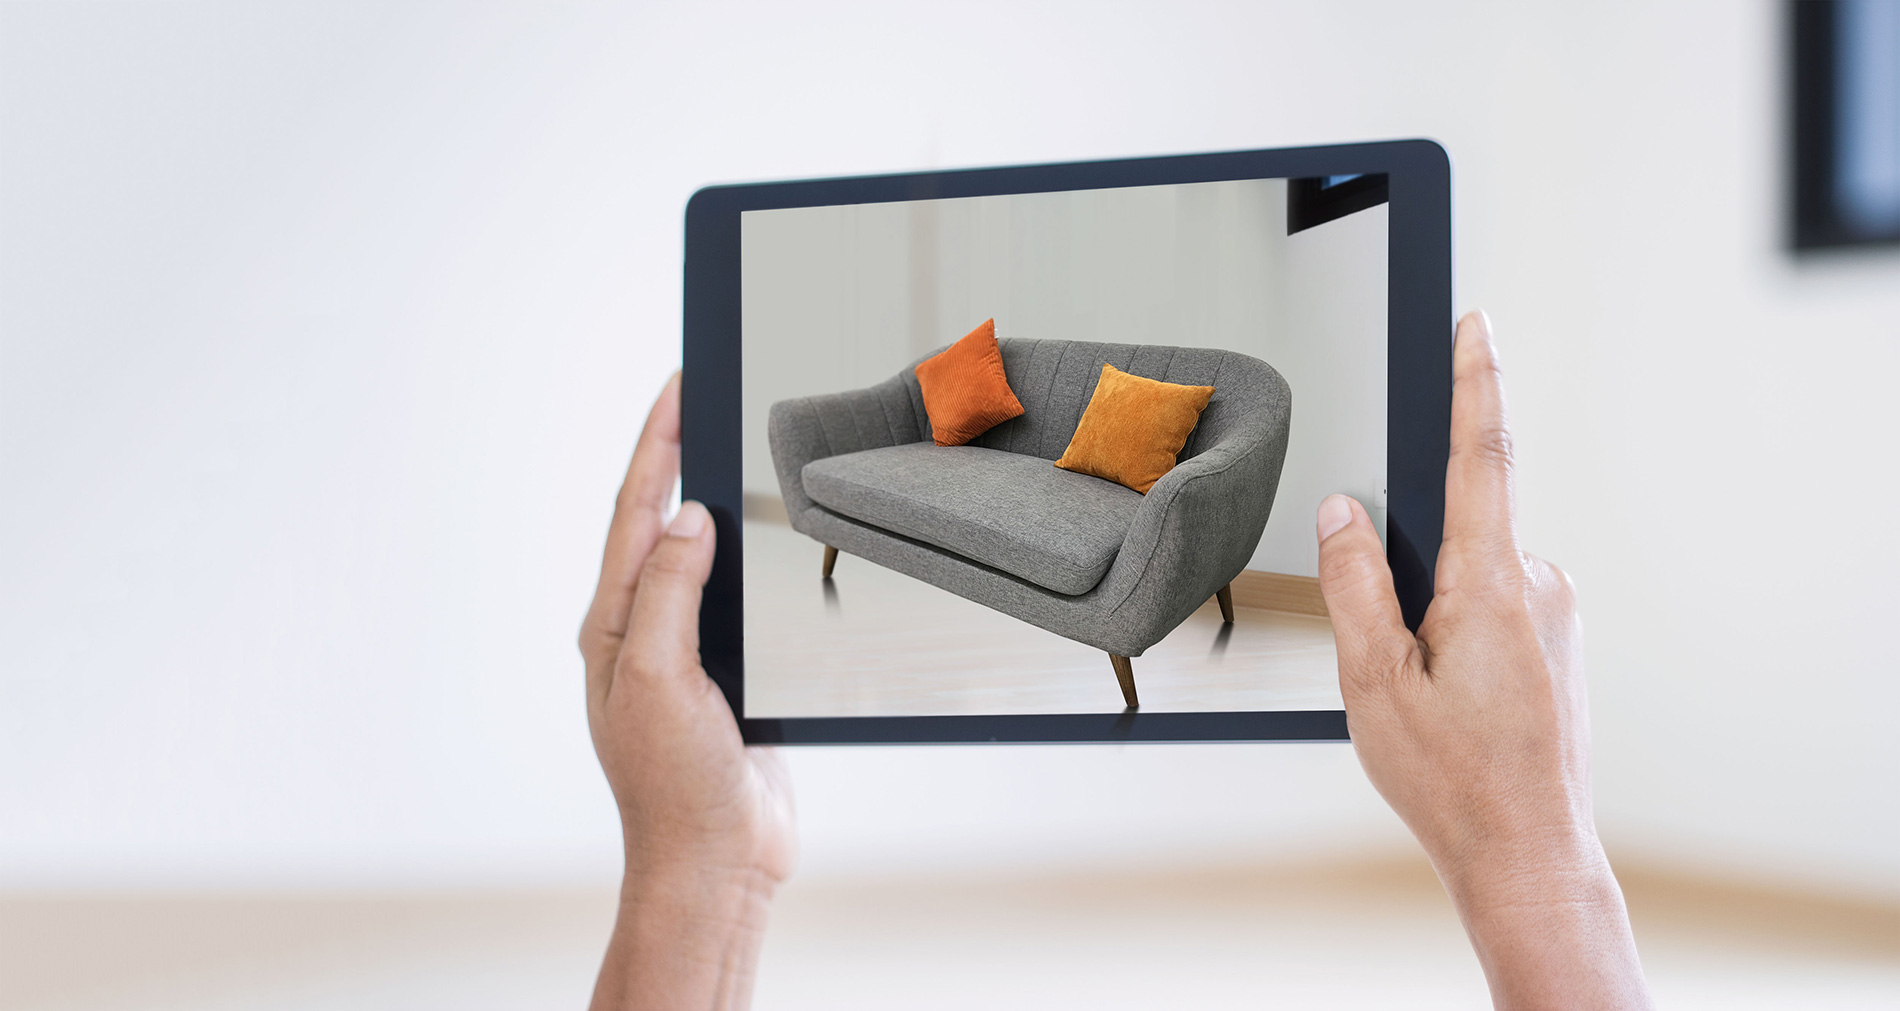 Demo: Visual Configuration and AR for Selling Furniture Online